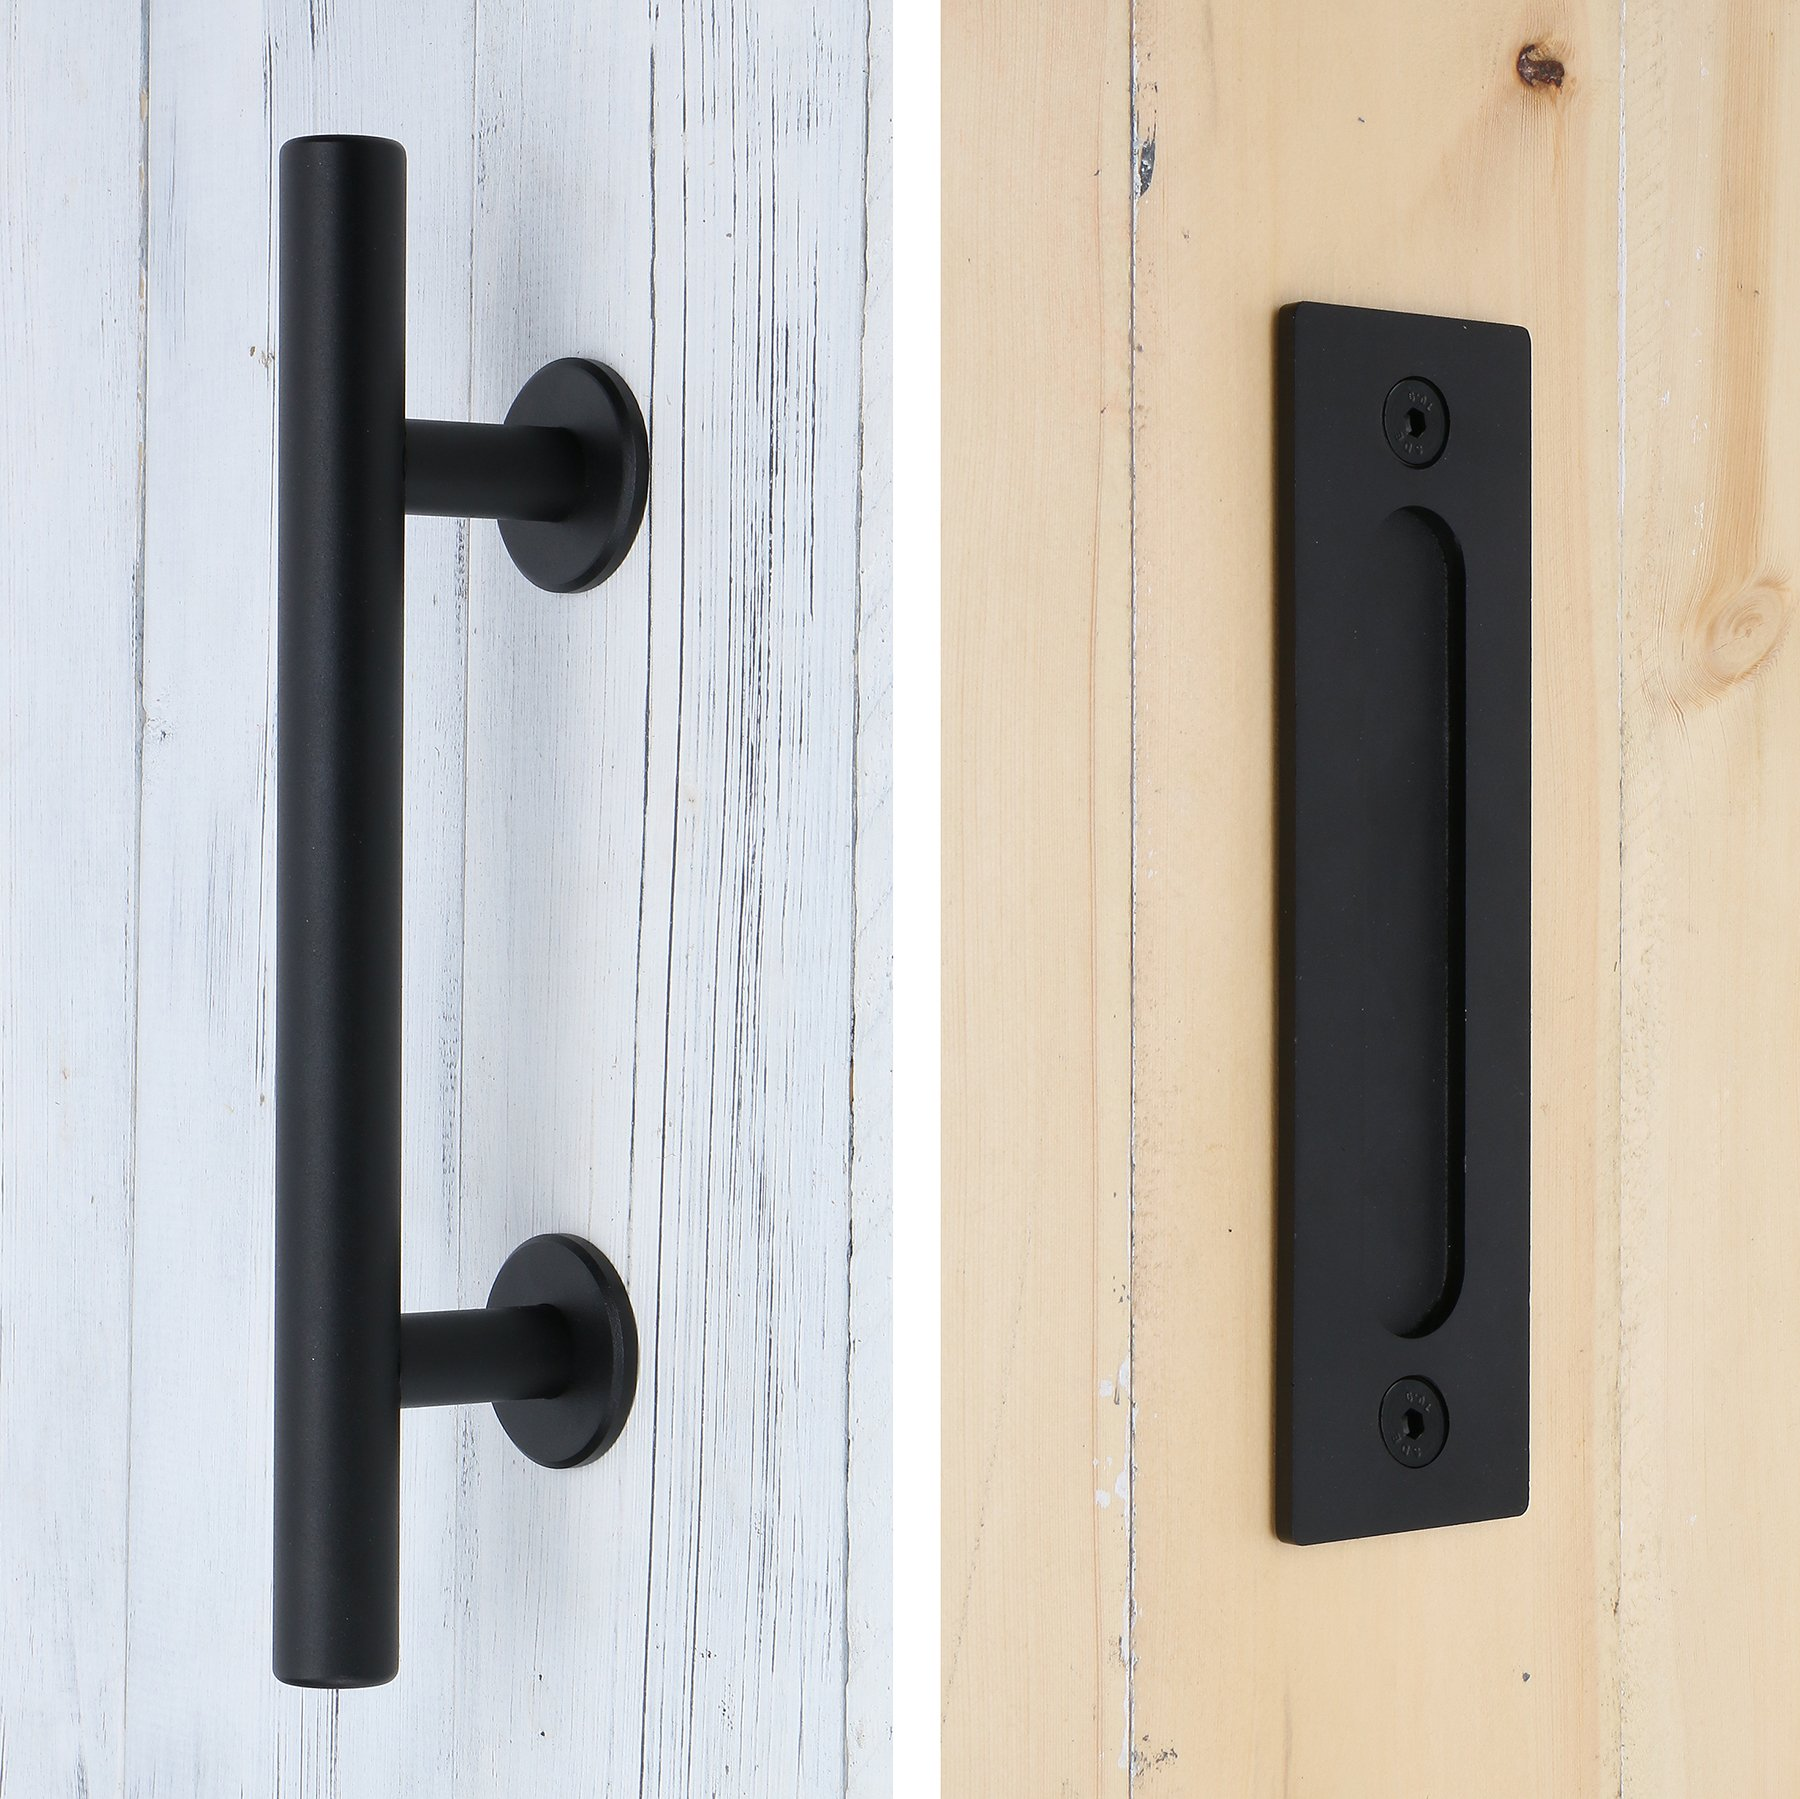 SMARTSTANDARD SHH0801BK Heavy Duty Large Rustic Flush and Pull Barn Door Handle, 12'', Black